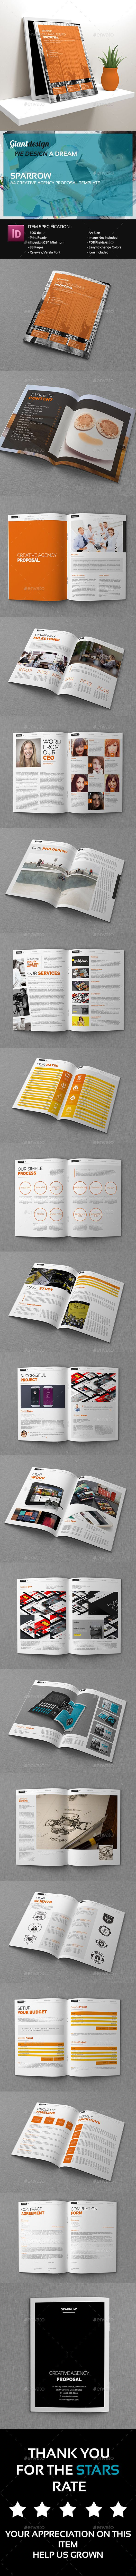 Sparrow creative agency proposal template by giantdesign see live sparrow creative agency proposal template by giantdesign see live preview here http maxwellsz